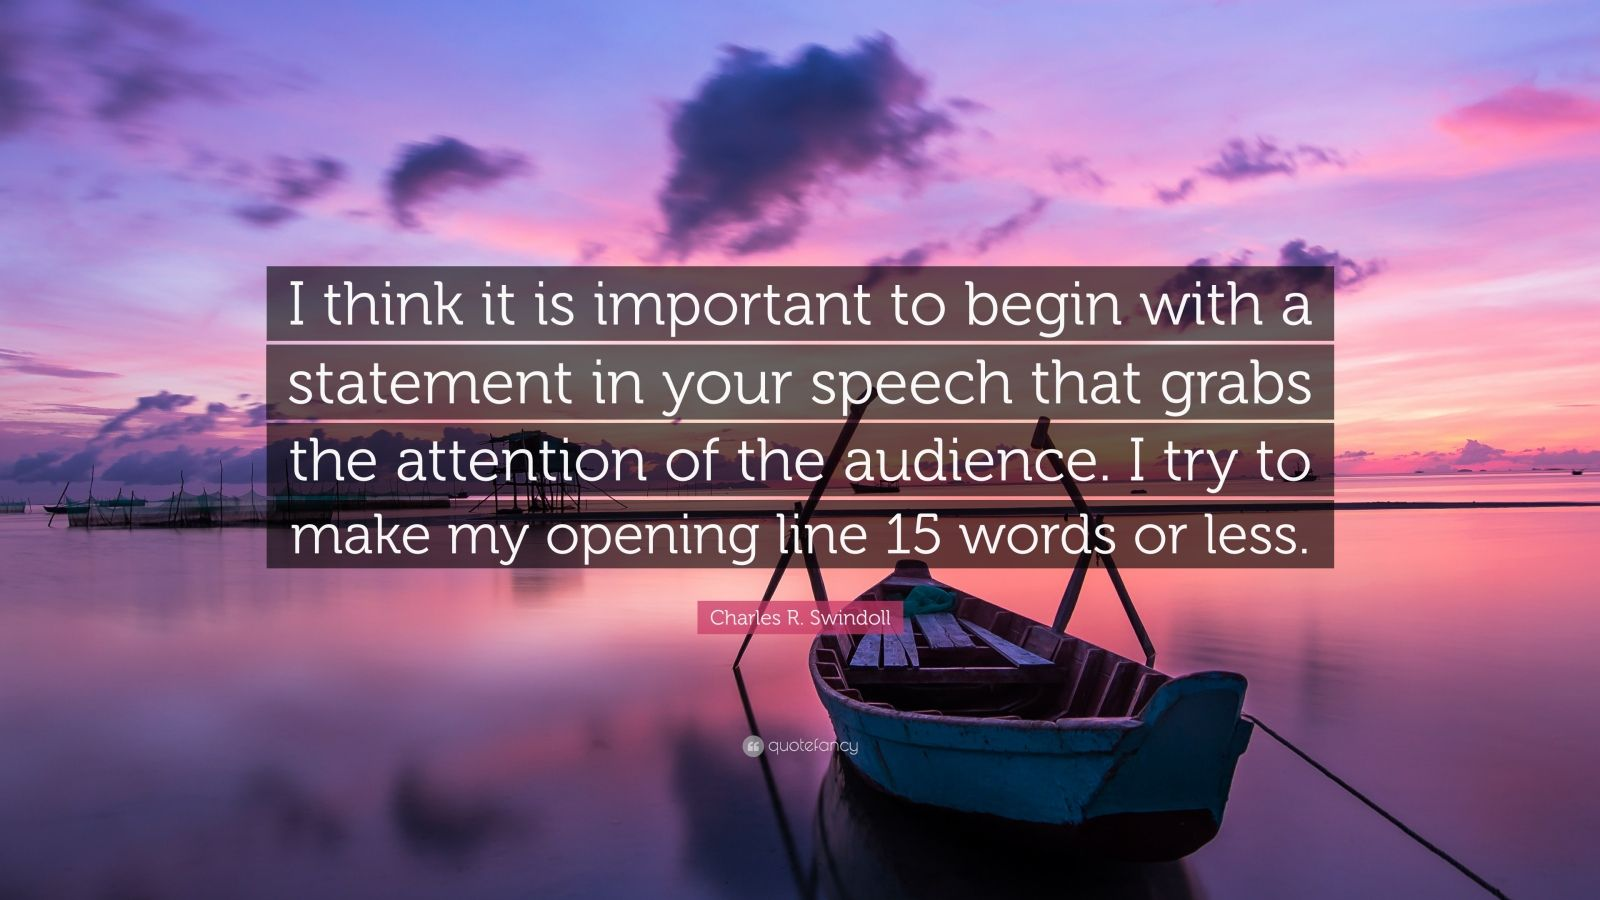 """Charles R. Swindoll Quote: """"I think it is important to begin with a statement in your speech that grabs the attention of the audience. I try to make my opening line 15 words or less."""""""